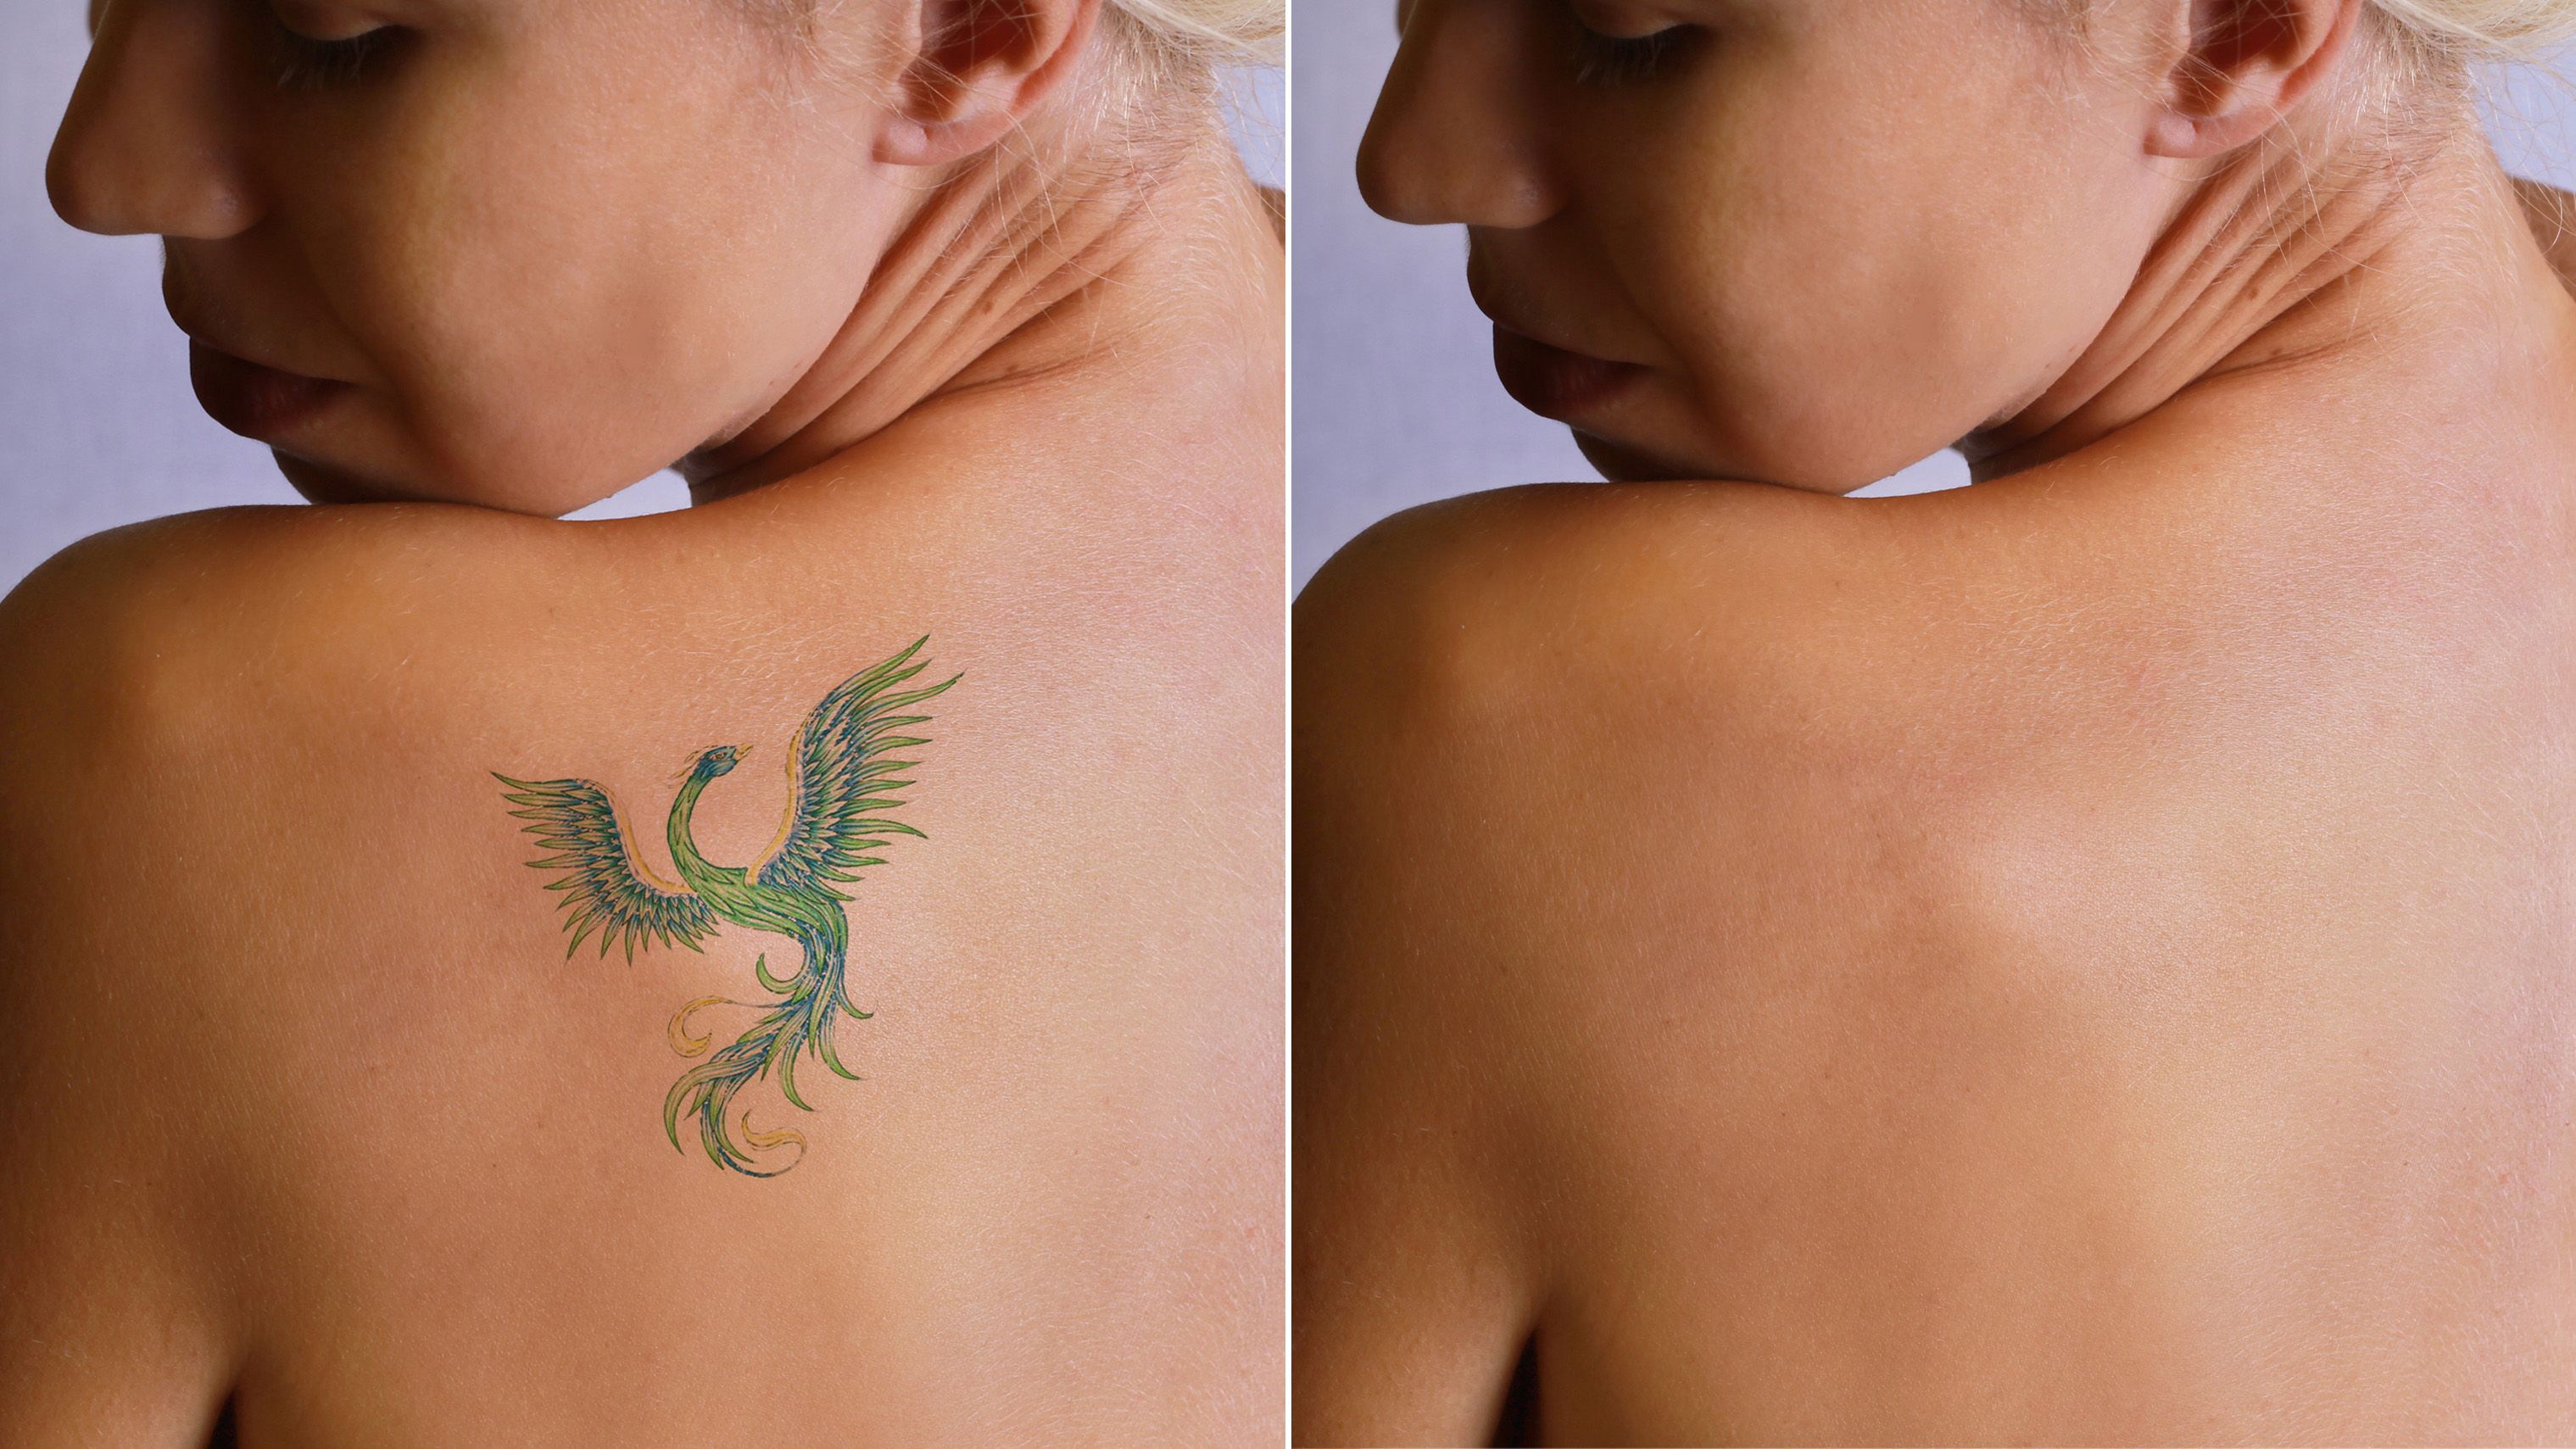 What Happens To Tattoos When You Remove Them Picosure Tattoo Removal Tattoo Removal Tattoo Removal Cost